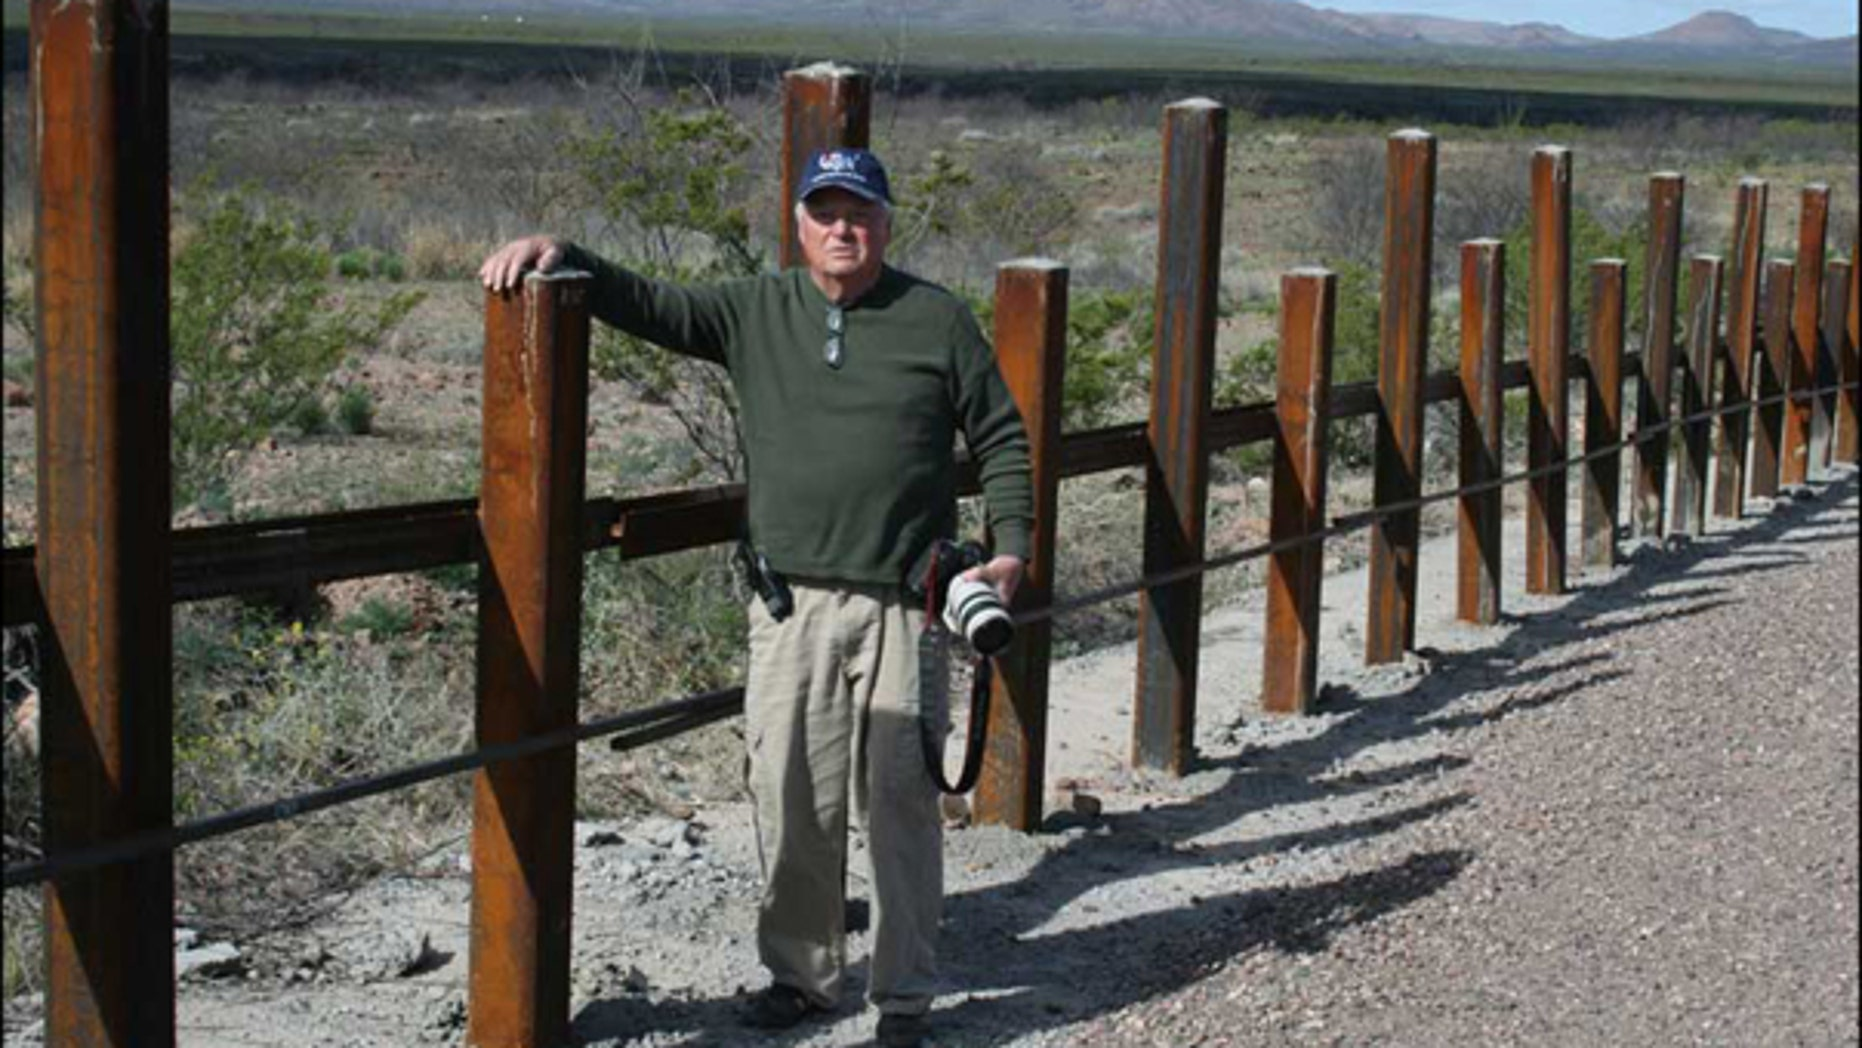 Local rancher Glenn Spencer stands by a vehicle barrier along the U.S.-Mexico border in Arizona. (Courtesy of American Border Patrol)